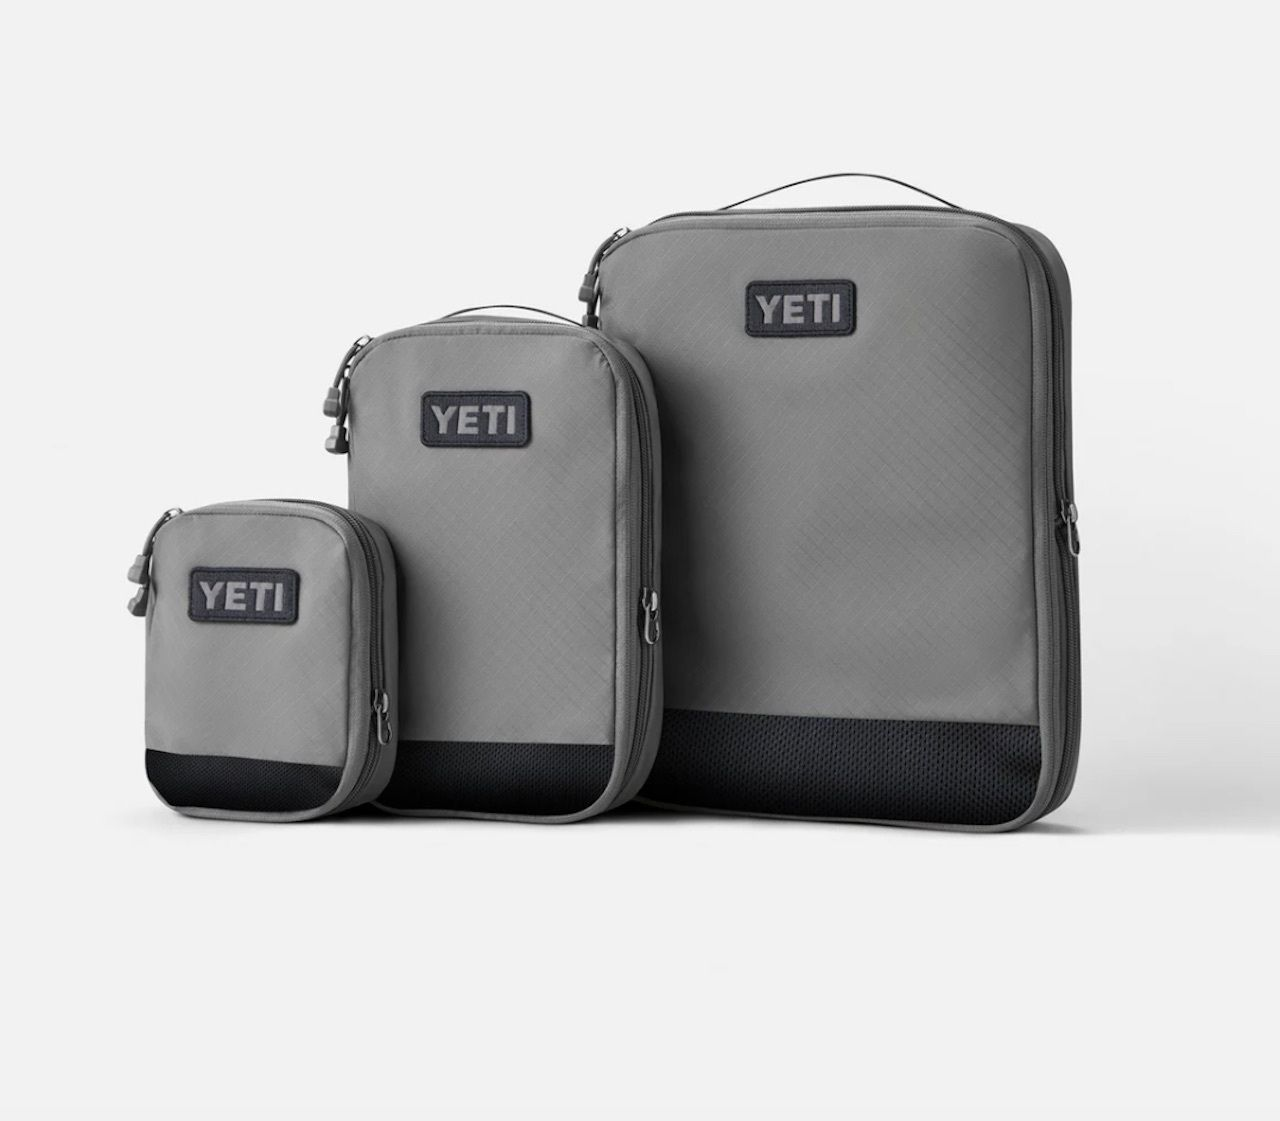 YETI packing cubes, YETI backpacks